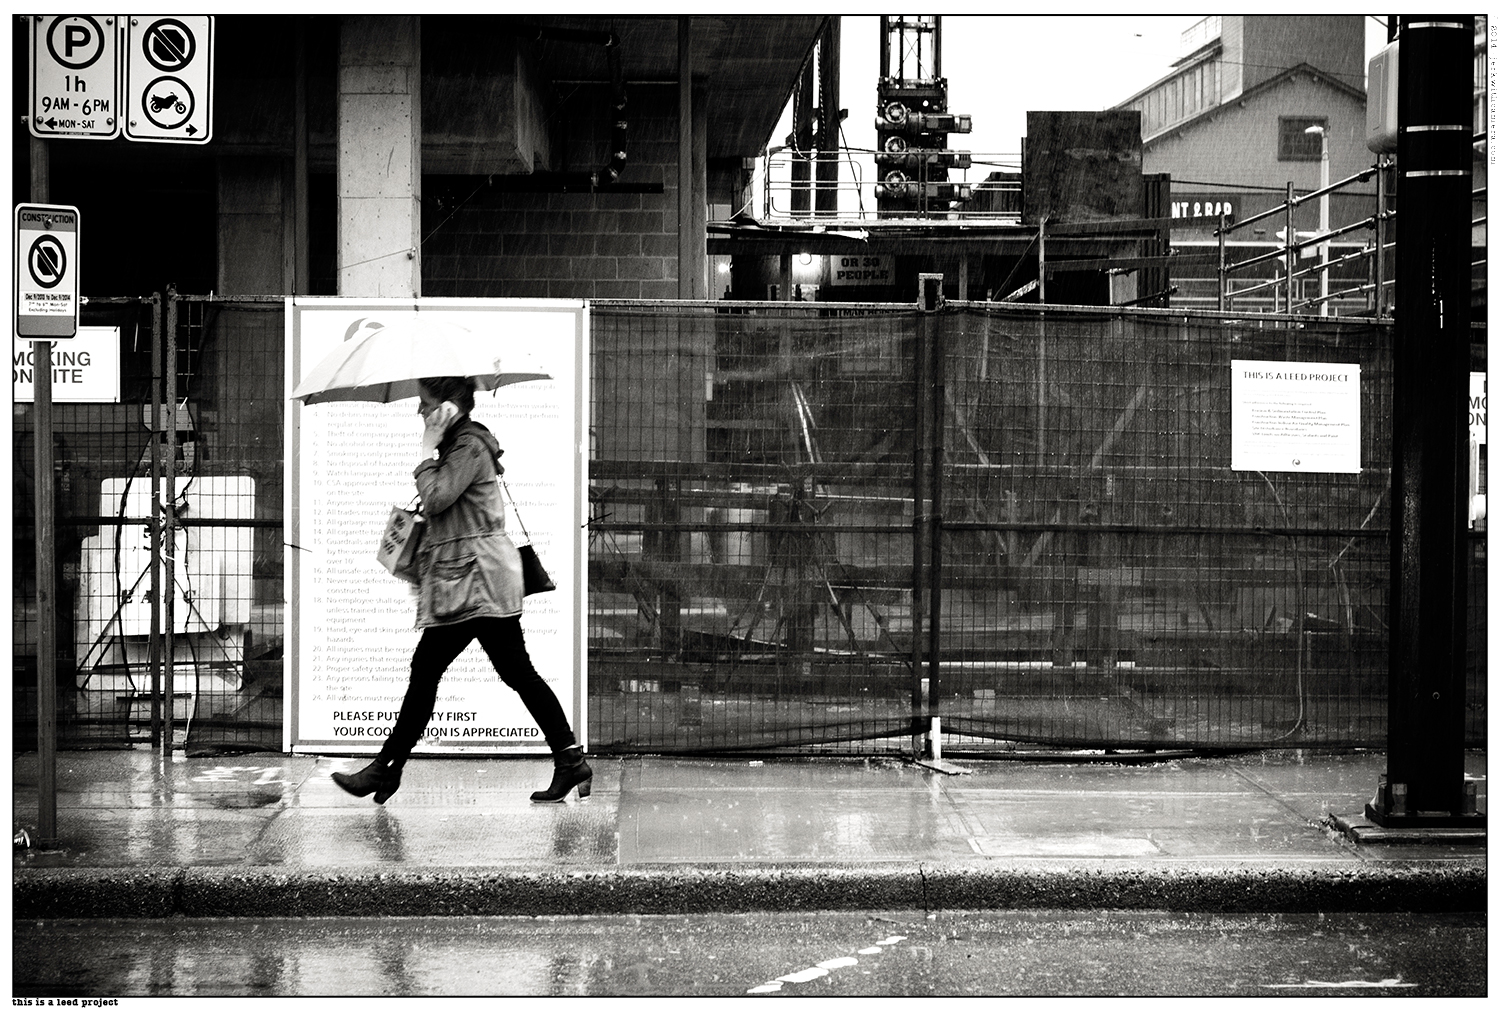 Picking On Complete Strangers - Nikon D610 - Olympic village Walking in the rain